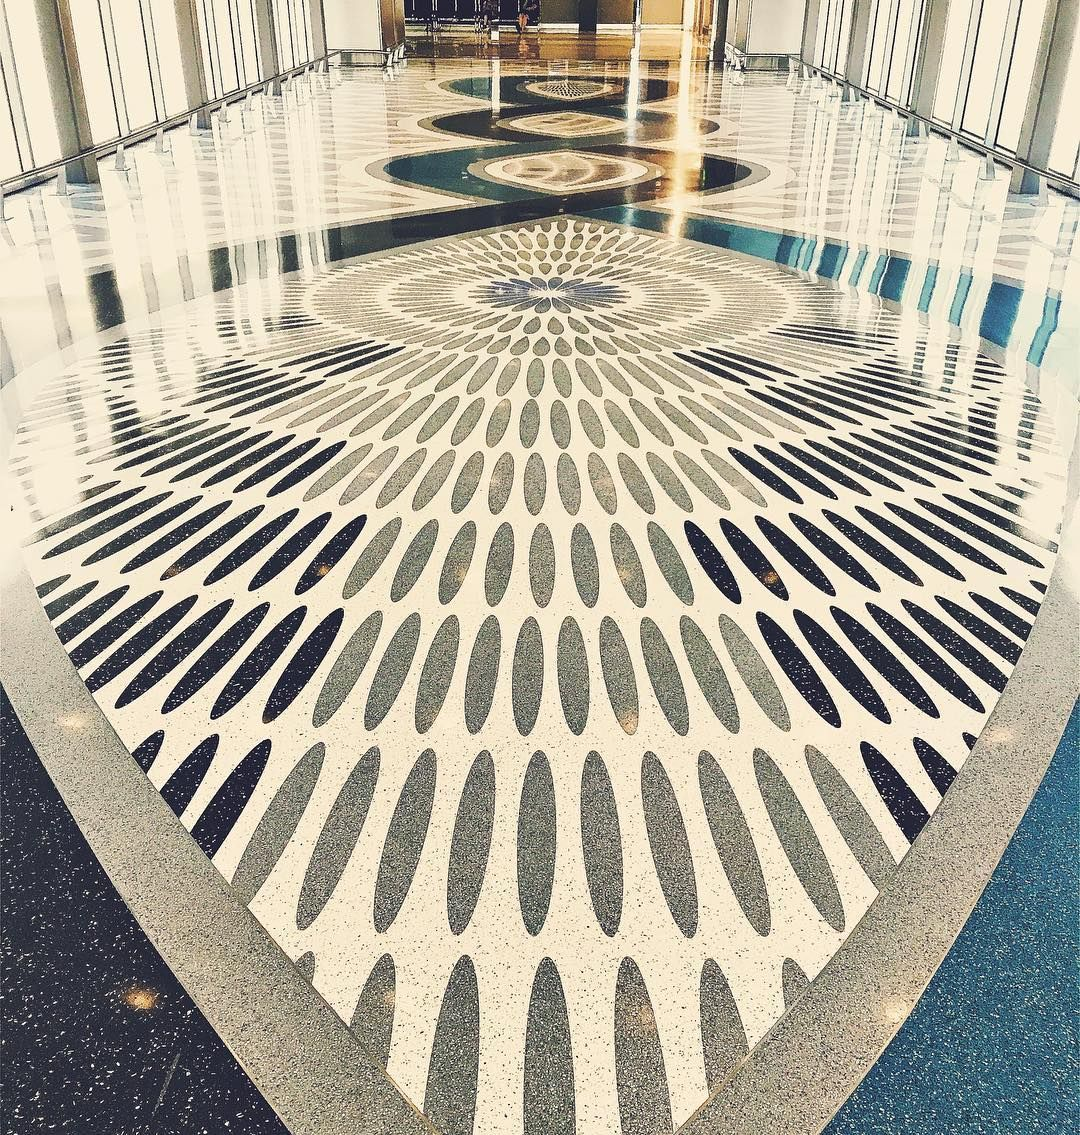 Terrazzo Floor Design at Phoenix Sky Harbor International Airport ...